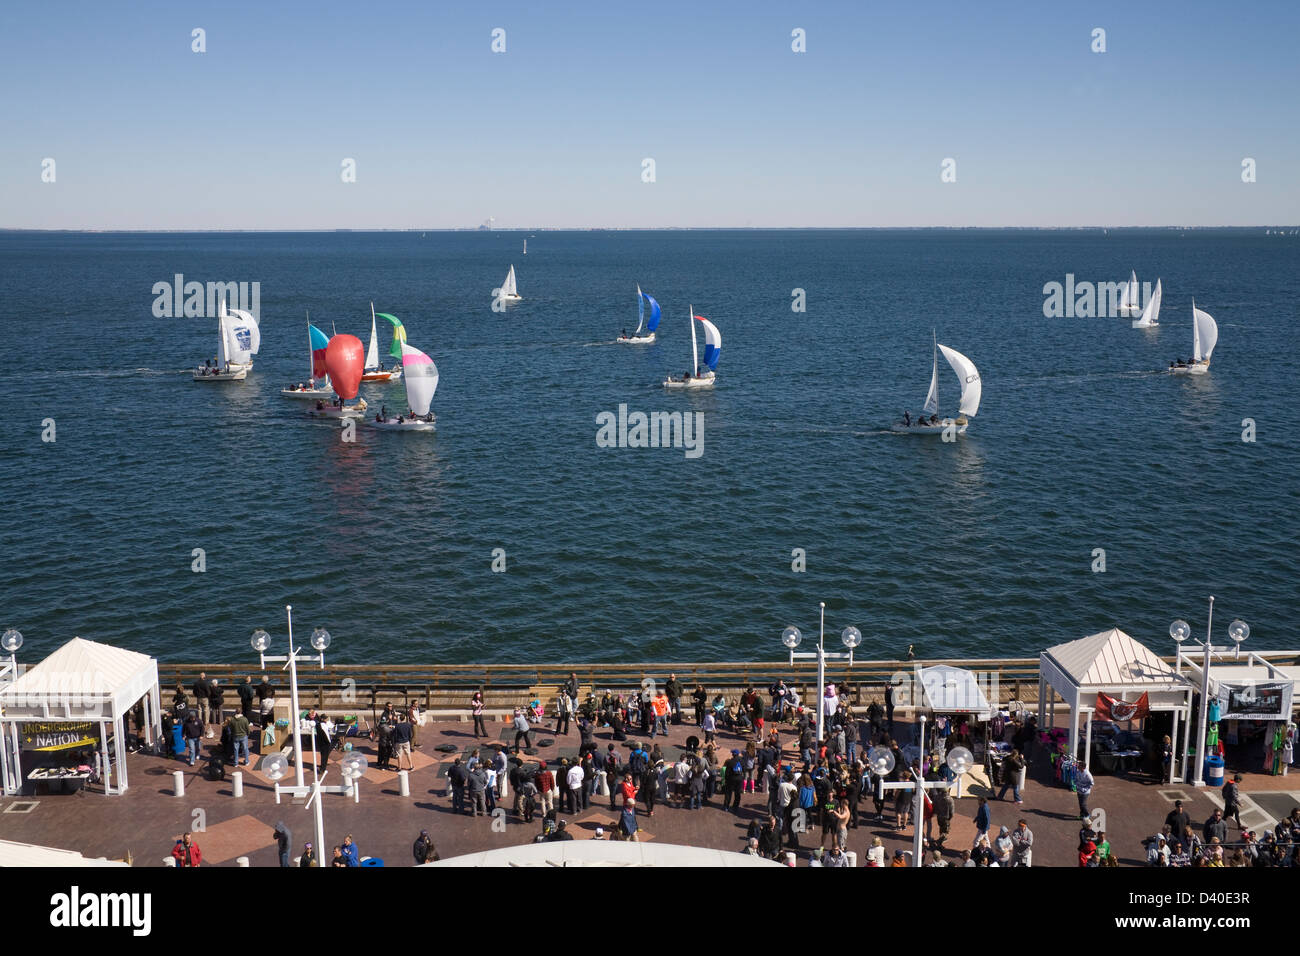 St Petersburg Florida USA Looking down on the Crossfit Challenge competitors at the end of the Pier with yacht regatta - Stock Image